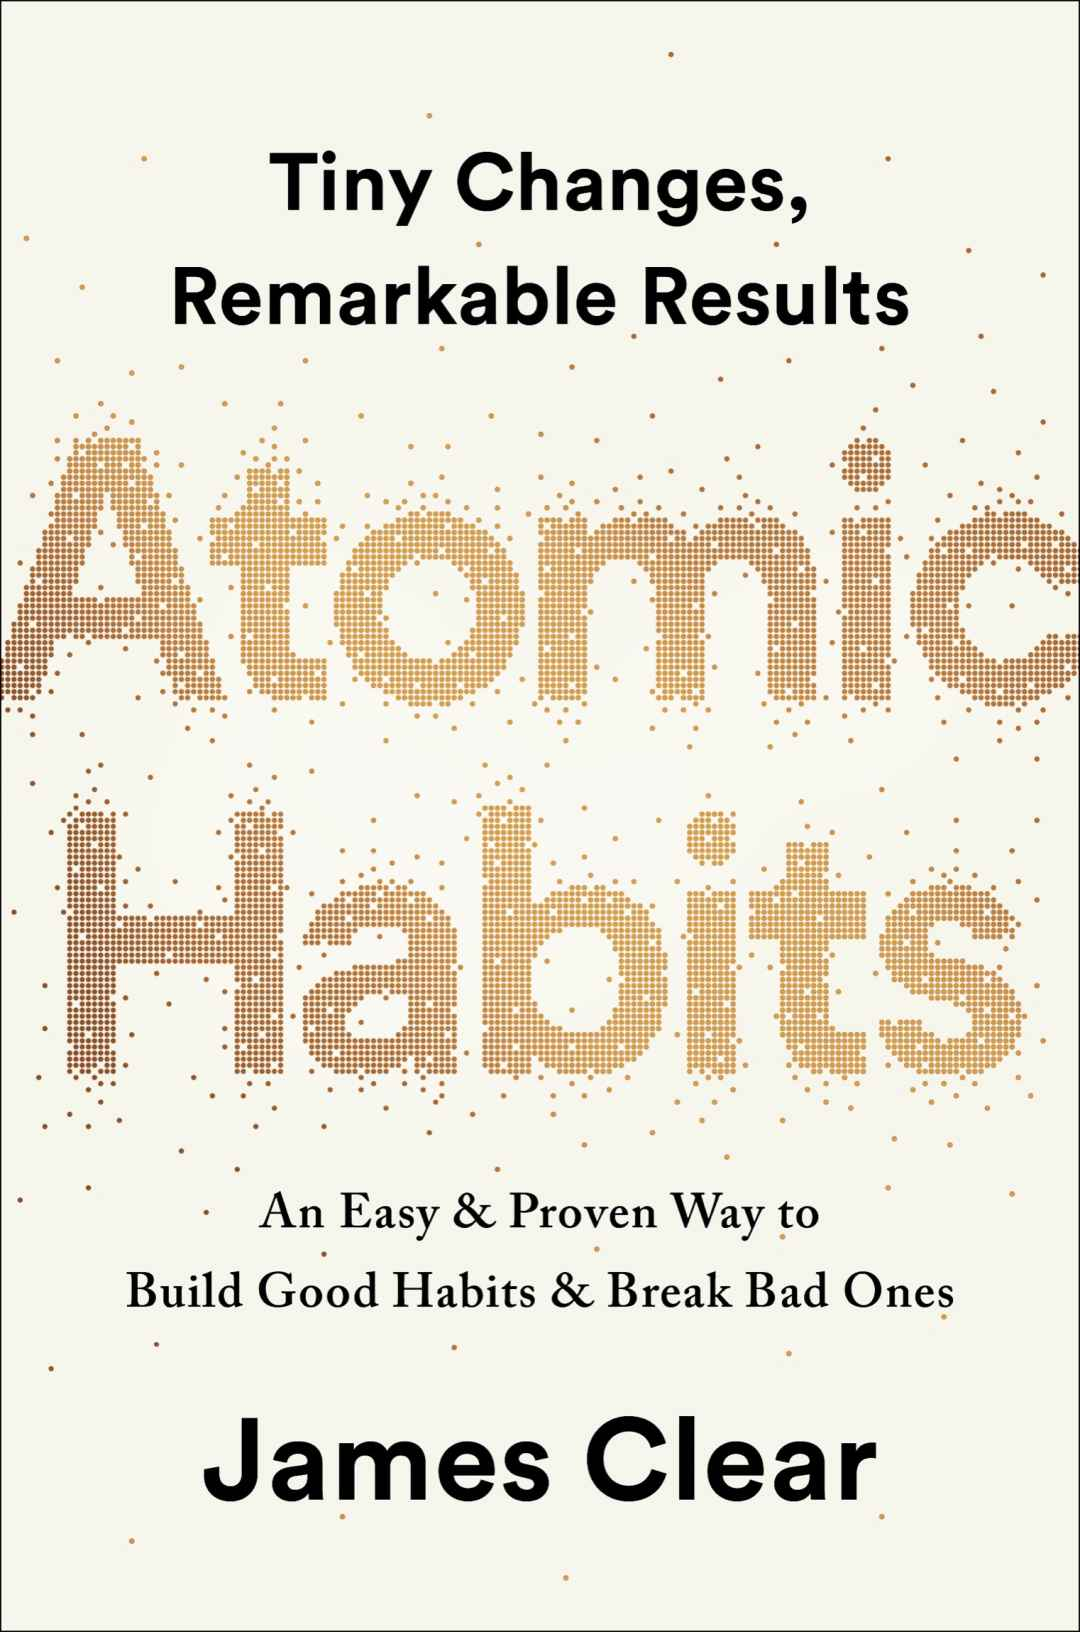 Atomic Habits: An Easy & Proven Way to Build Good Habits & Break Bad Ones - James Clear [kindle] [mobi]